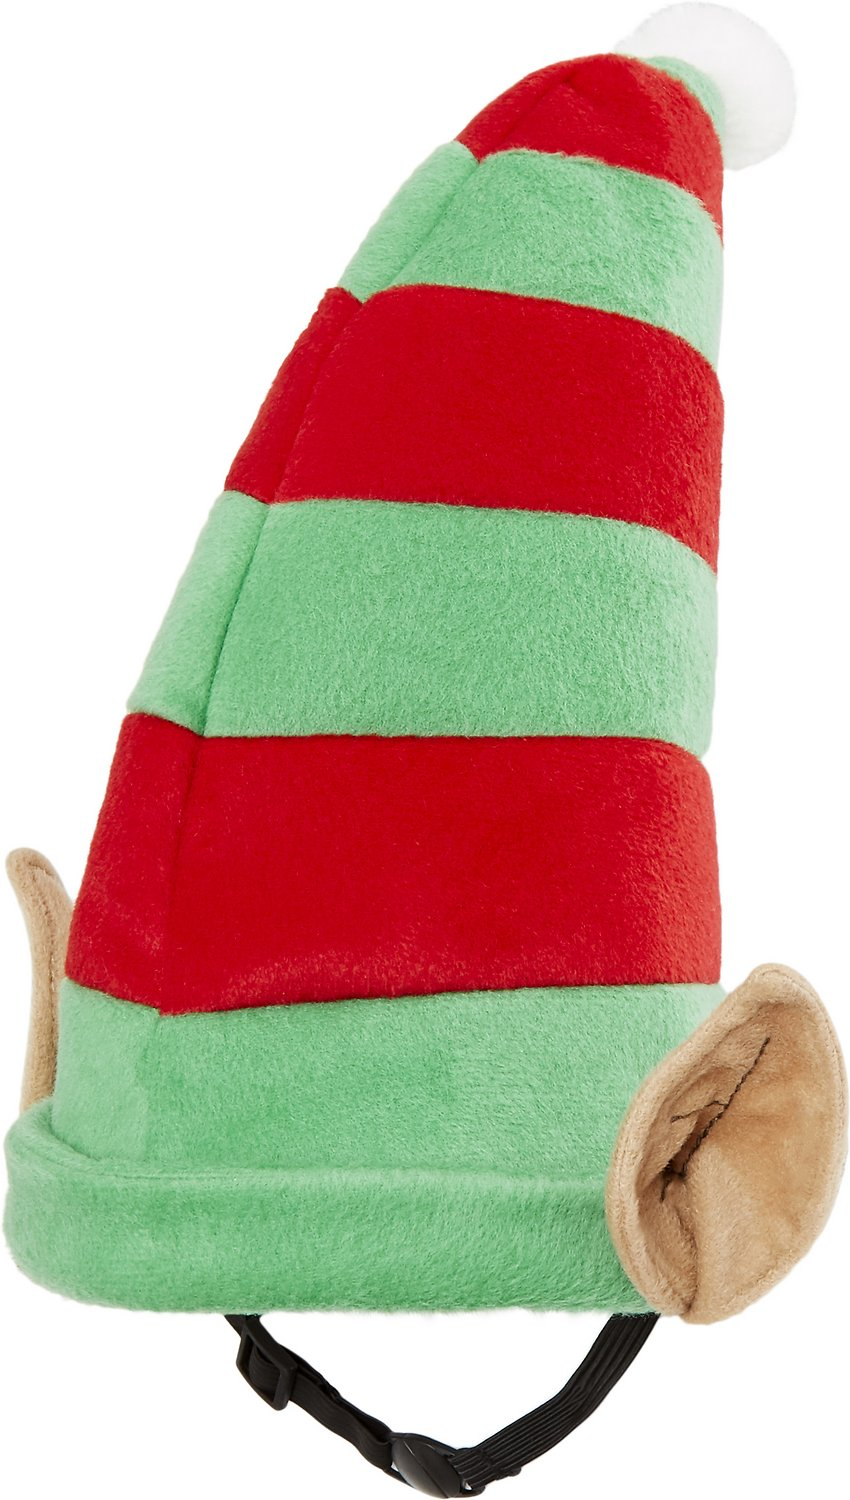 46bea7b0d4547 Outward Hound Holiday Elf Hat Pet Costume